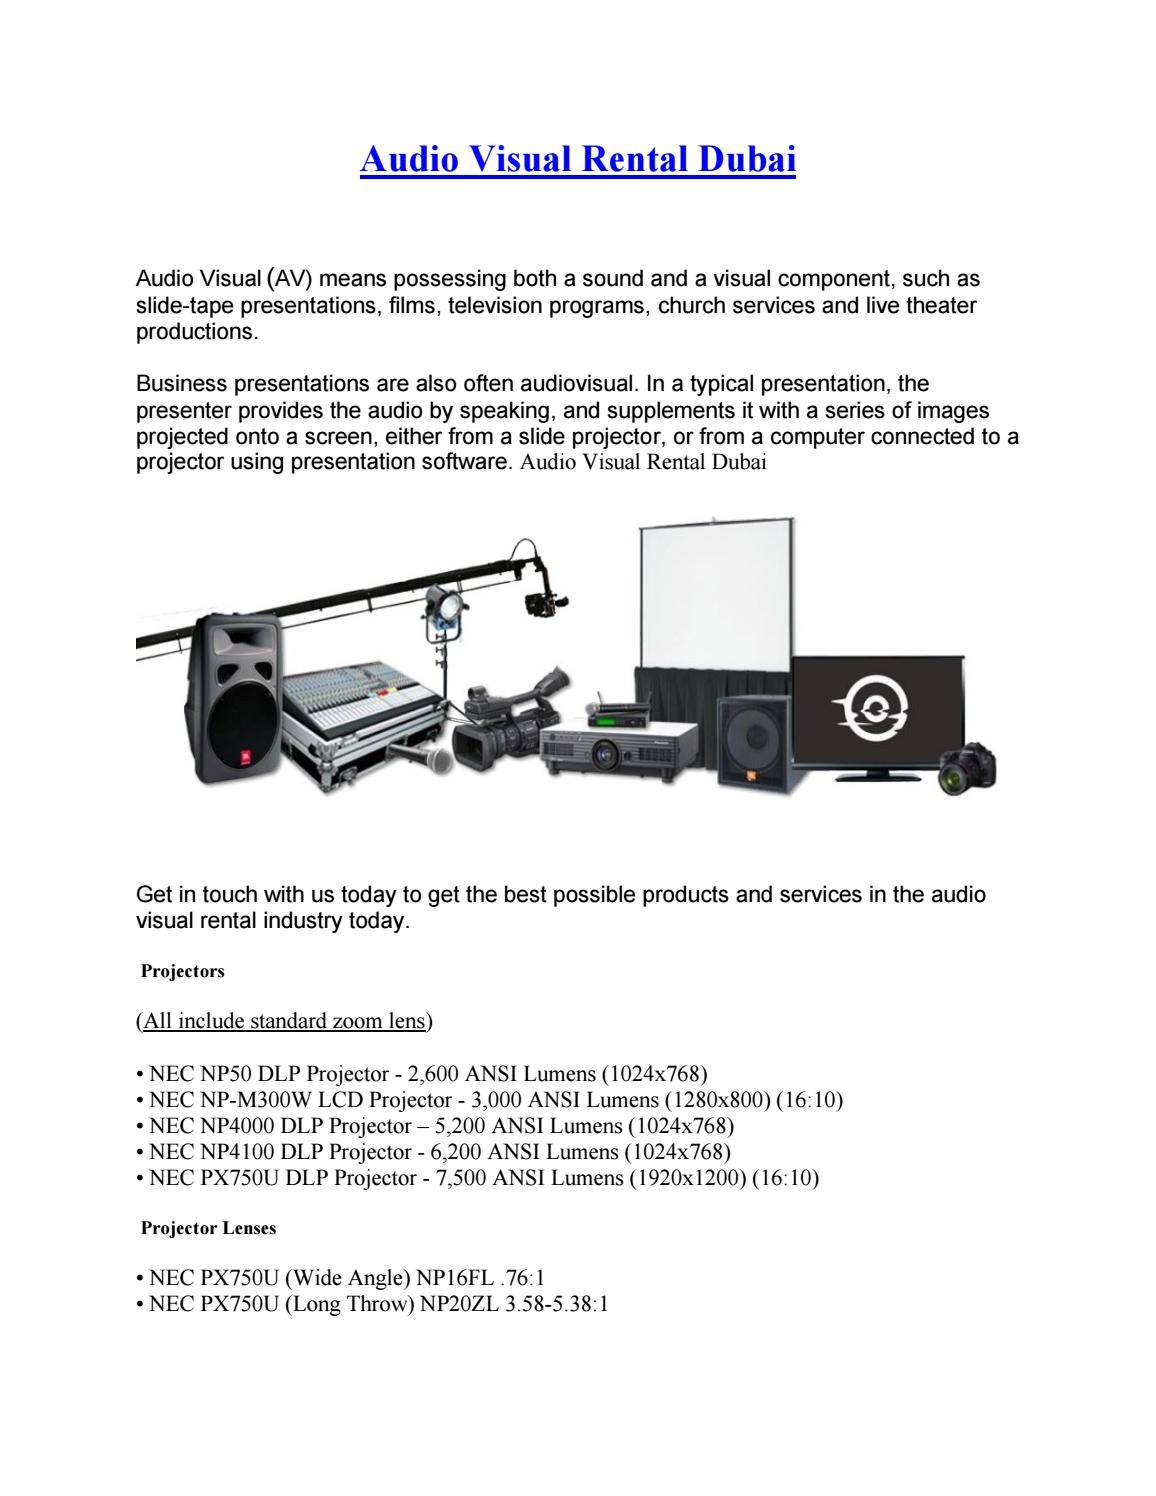 Audio Visual Rentals Dubai by alibhai - issuu